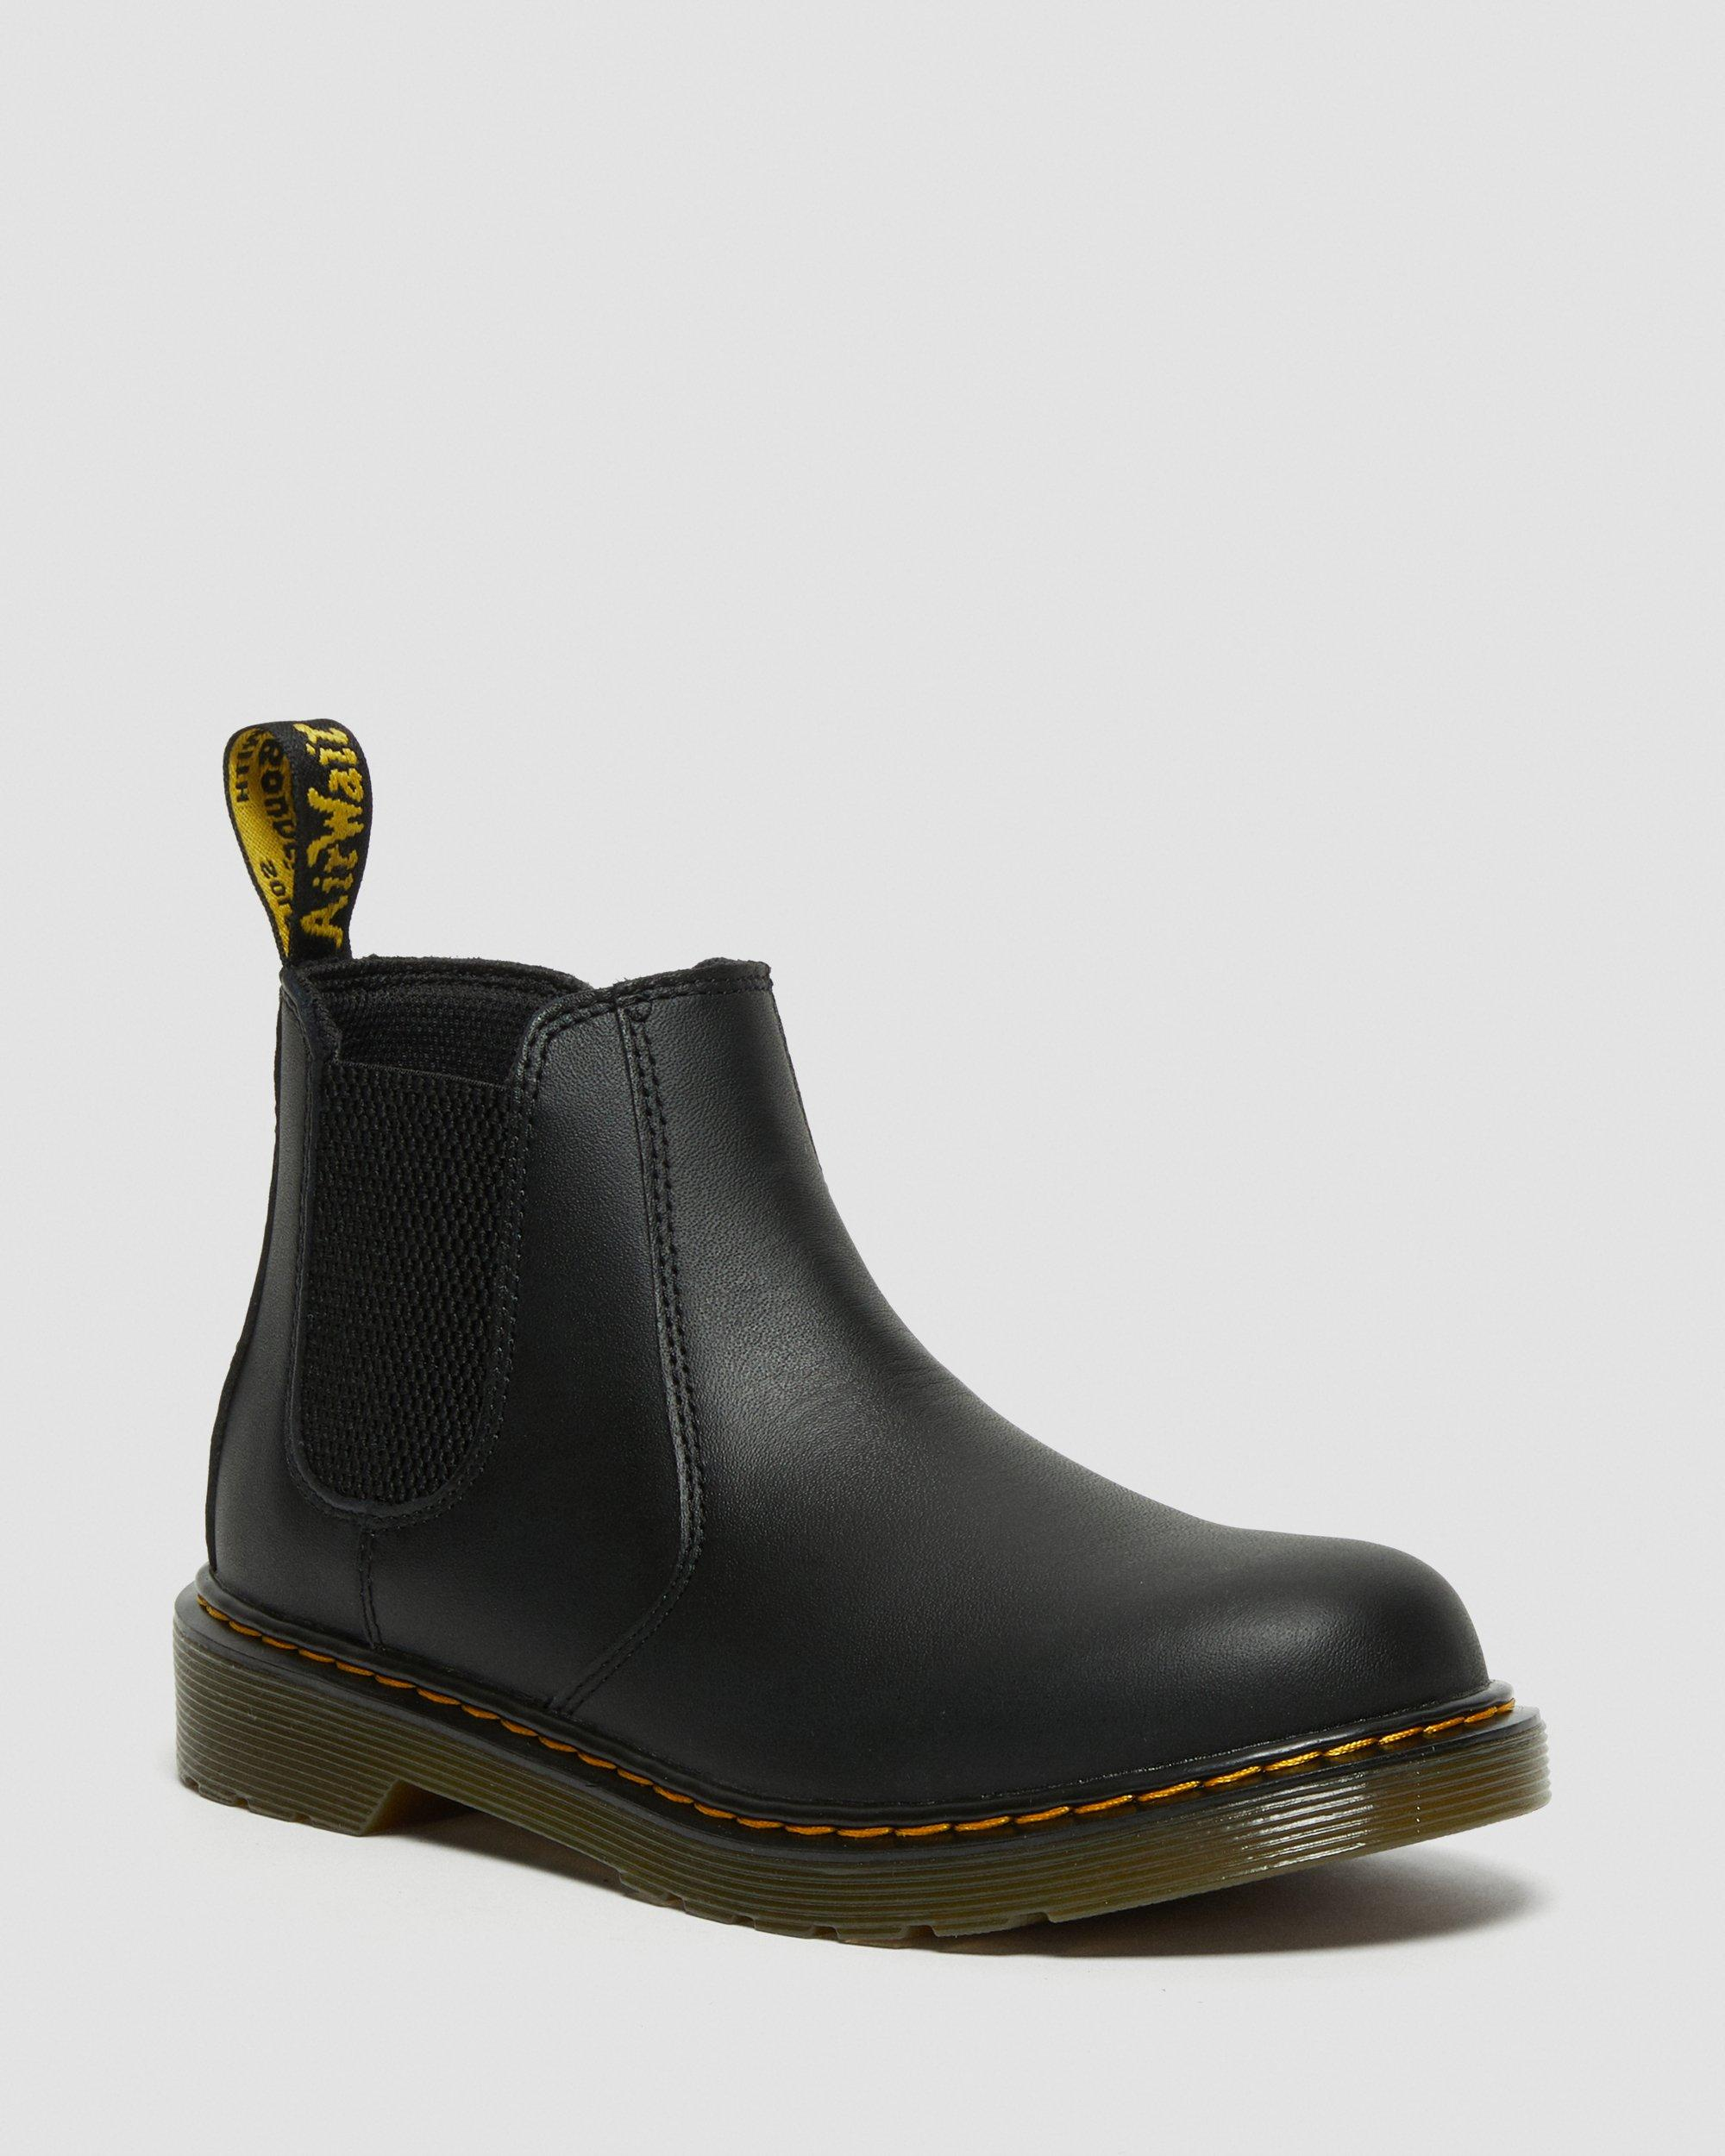 JUGEND 2976 SOFTY T CHELSEA BOOTS | Chelsea Boots | Leder